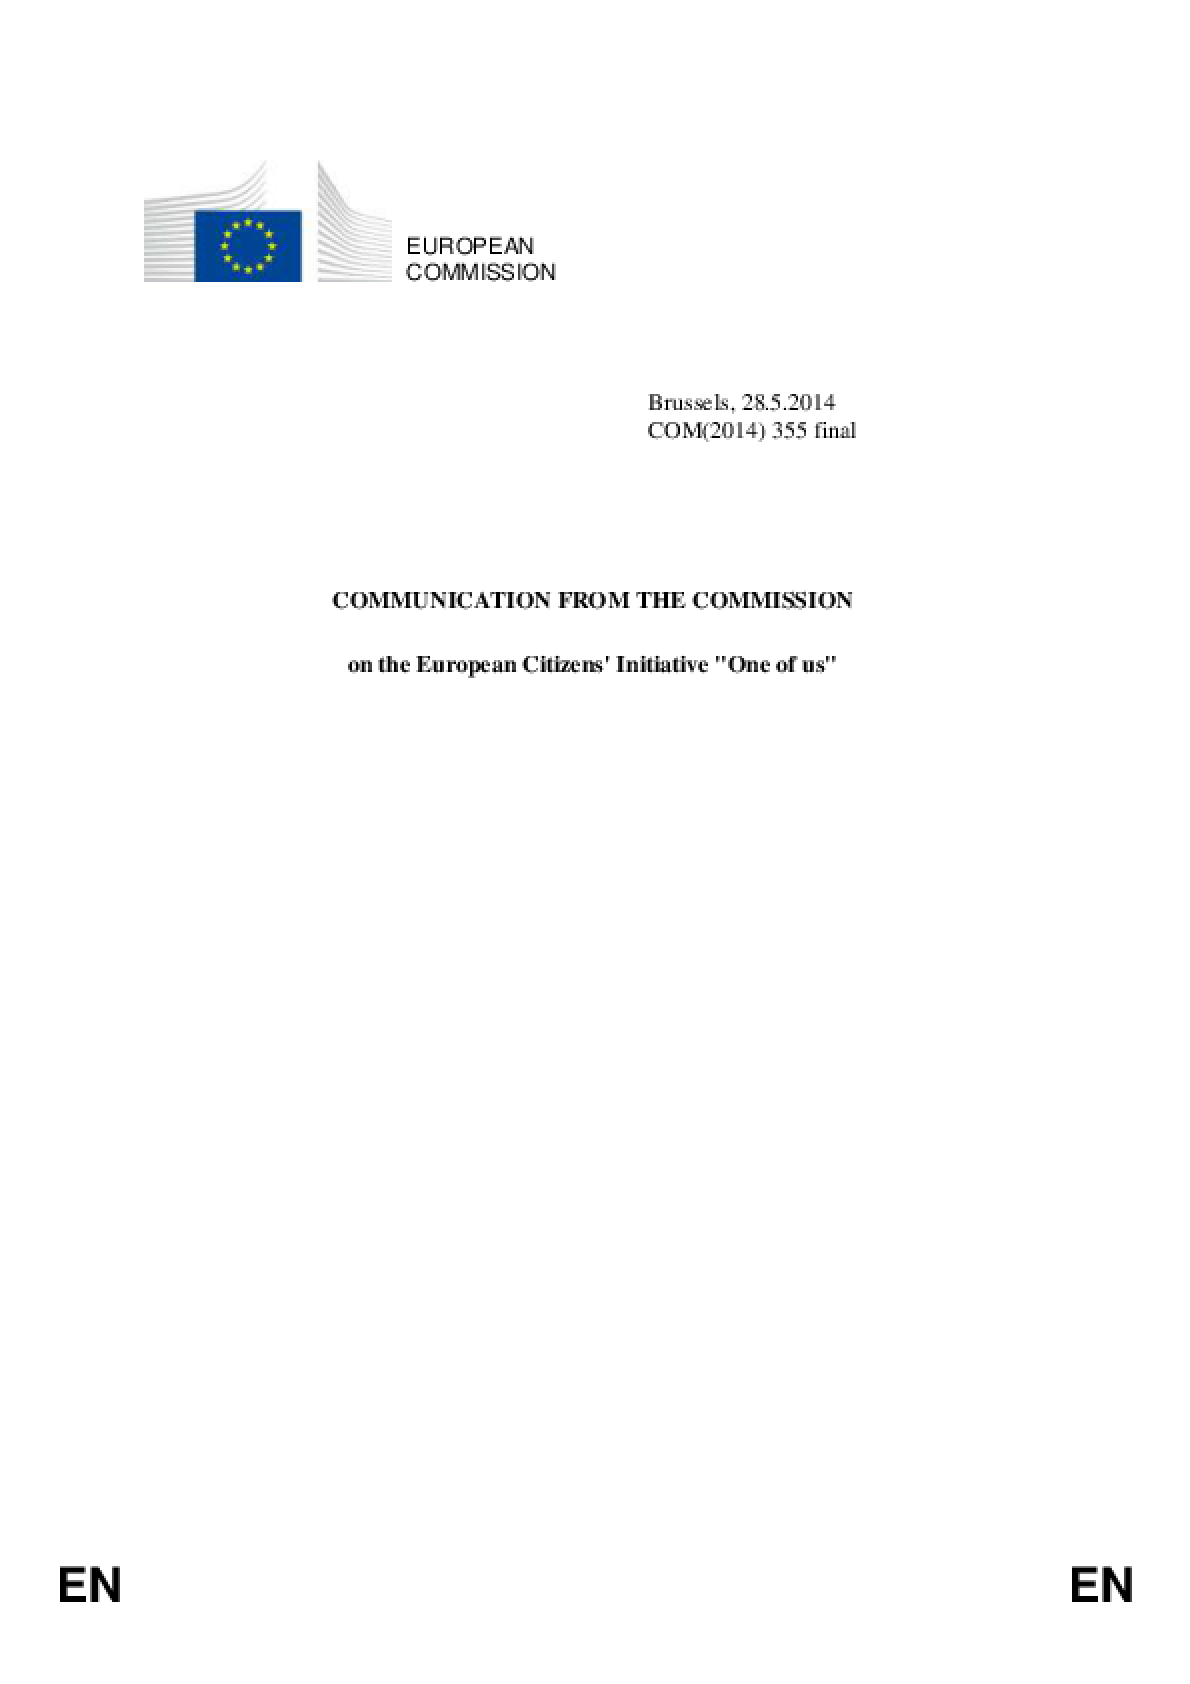 Communication From the Commission on the European Citizens' Initiative 'One of us'